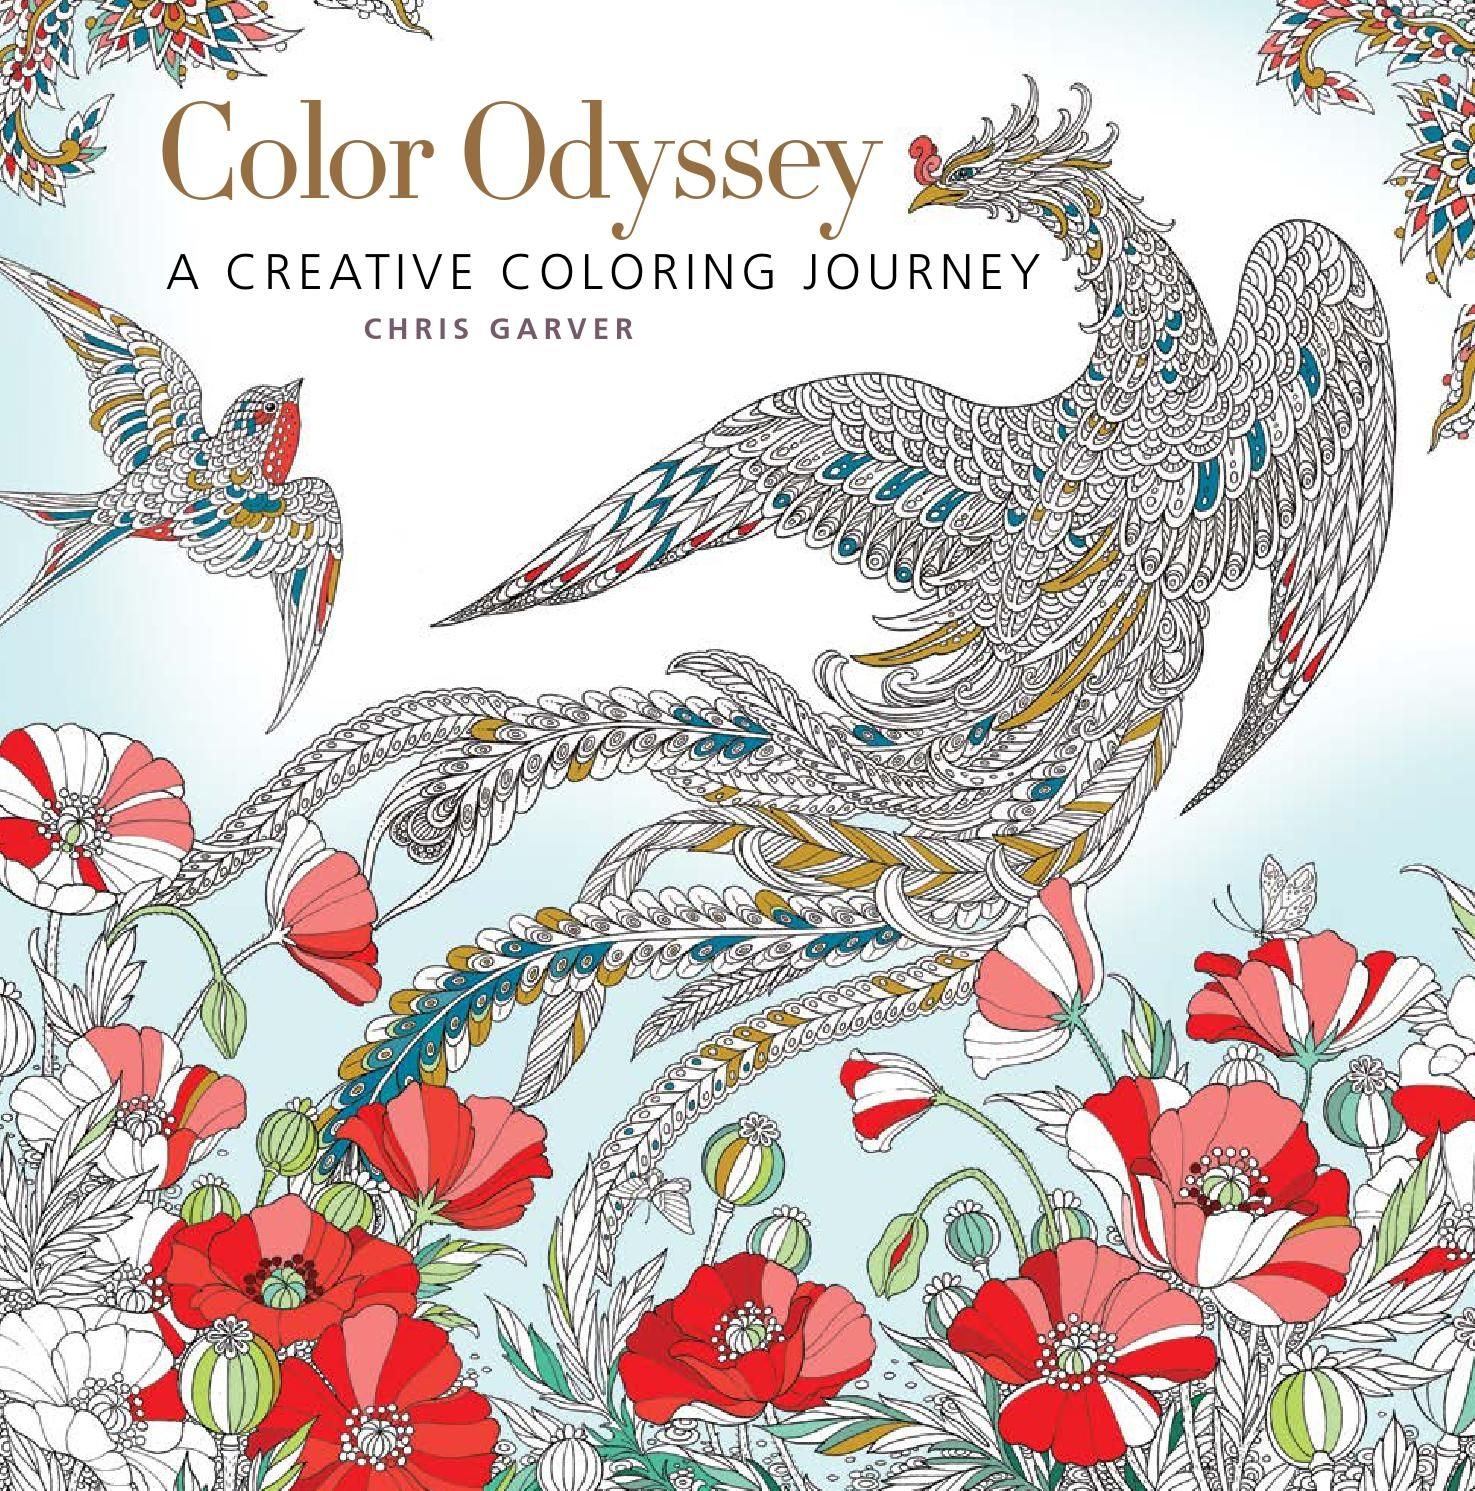 Coloring book software - Color Odyssey Chris Garver Is Best Known As An In Demand Tattoo Artist And A